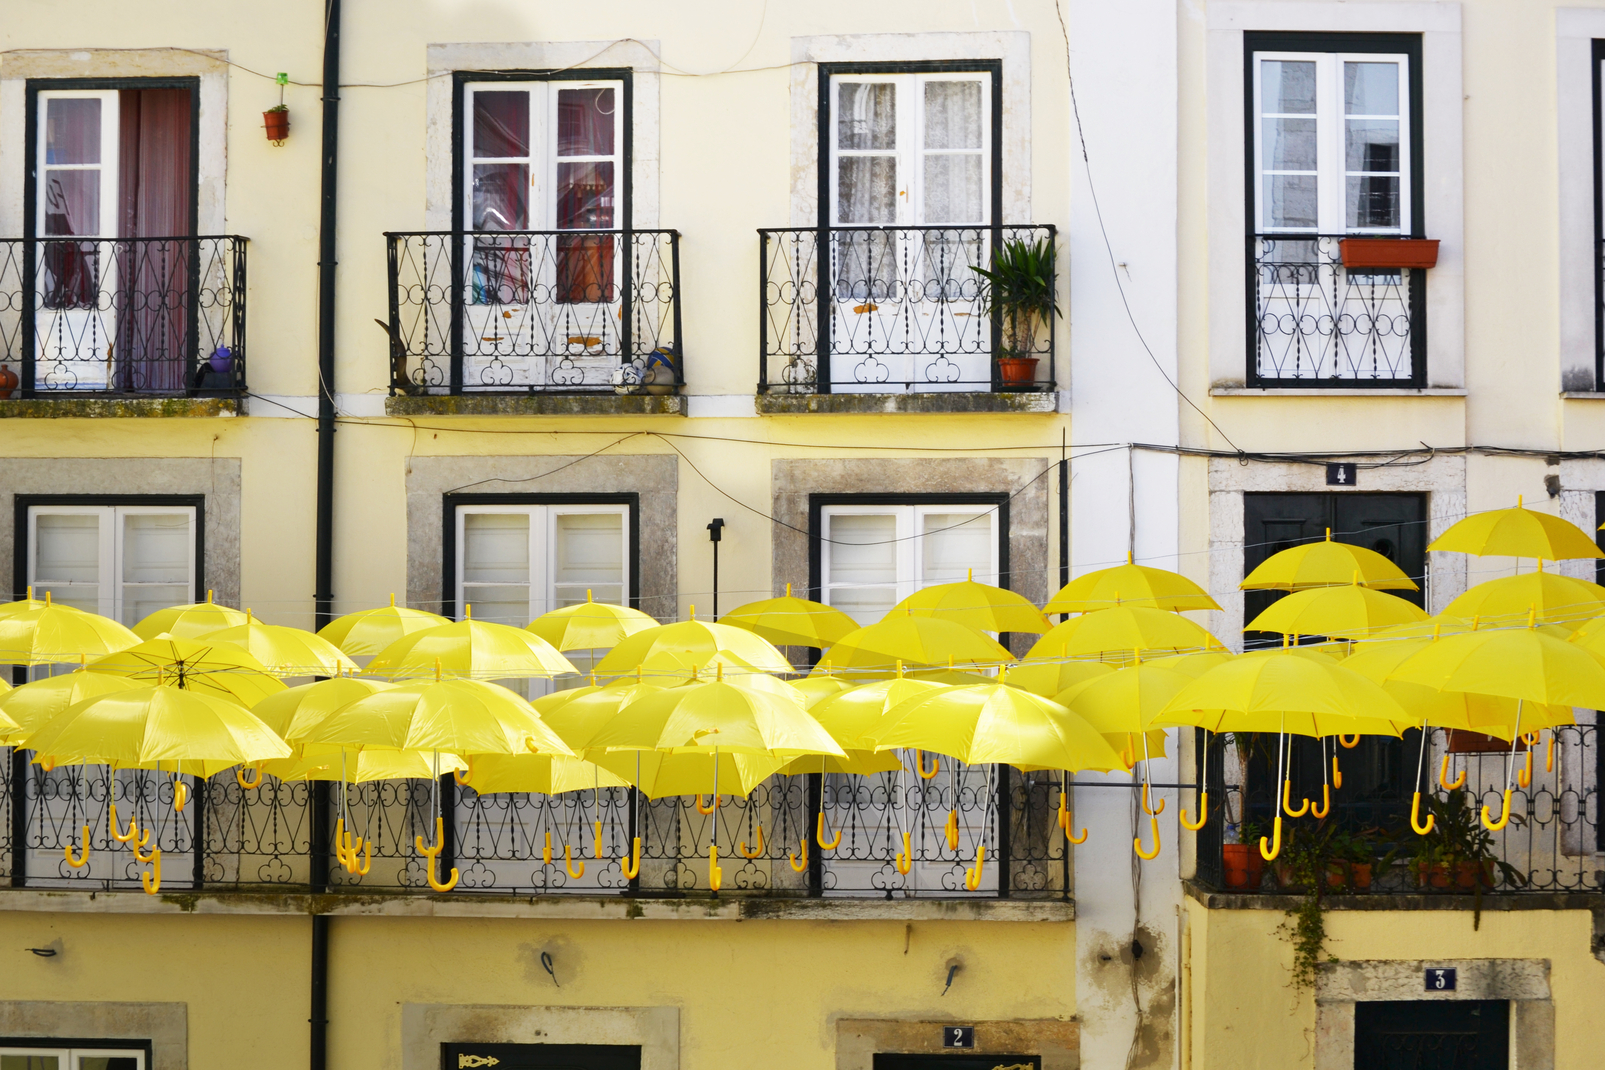 Umbrella Sky Project - Alfama'14